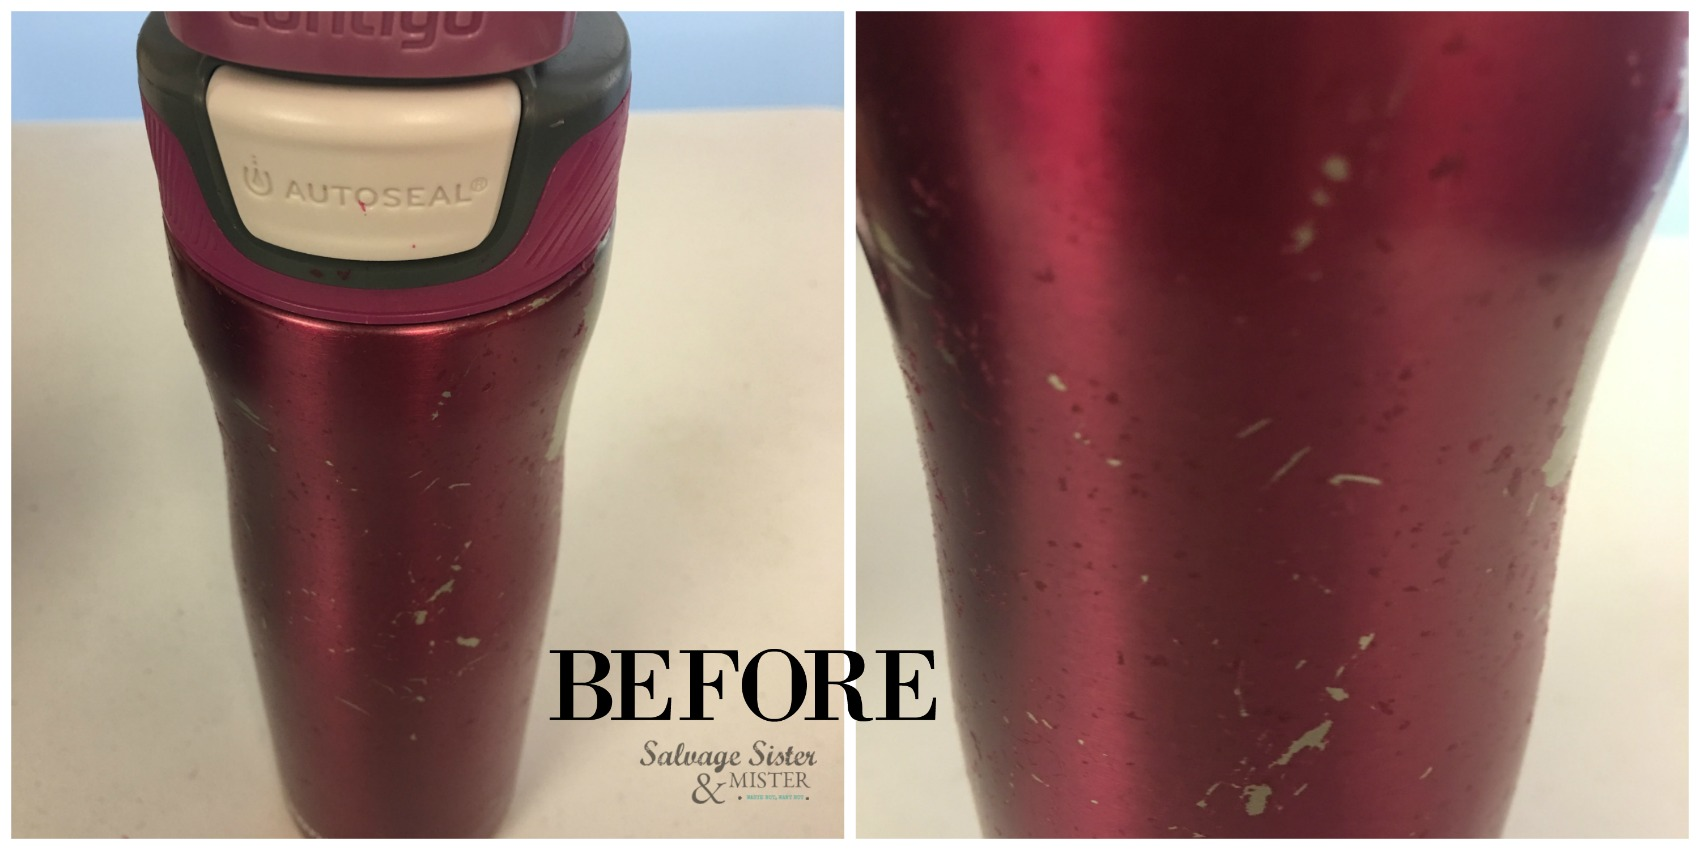 How to Remove Scratched Coating from Stainless Steel Travel Mug tutorial on salvage sister and mister blog